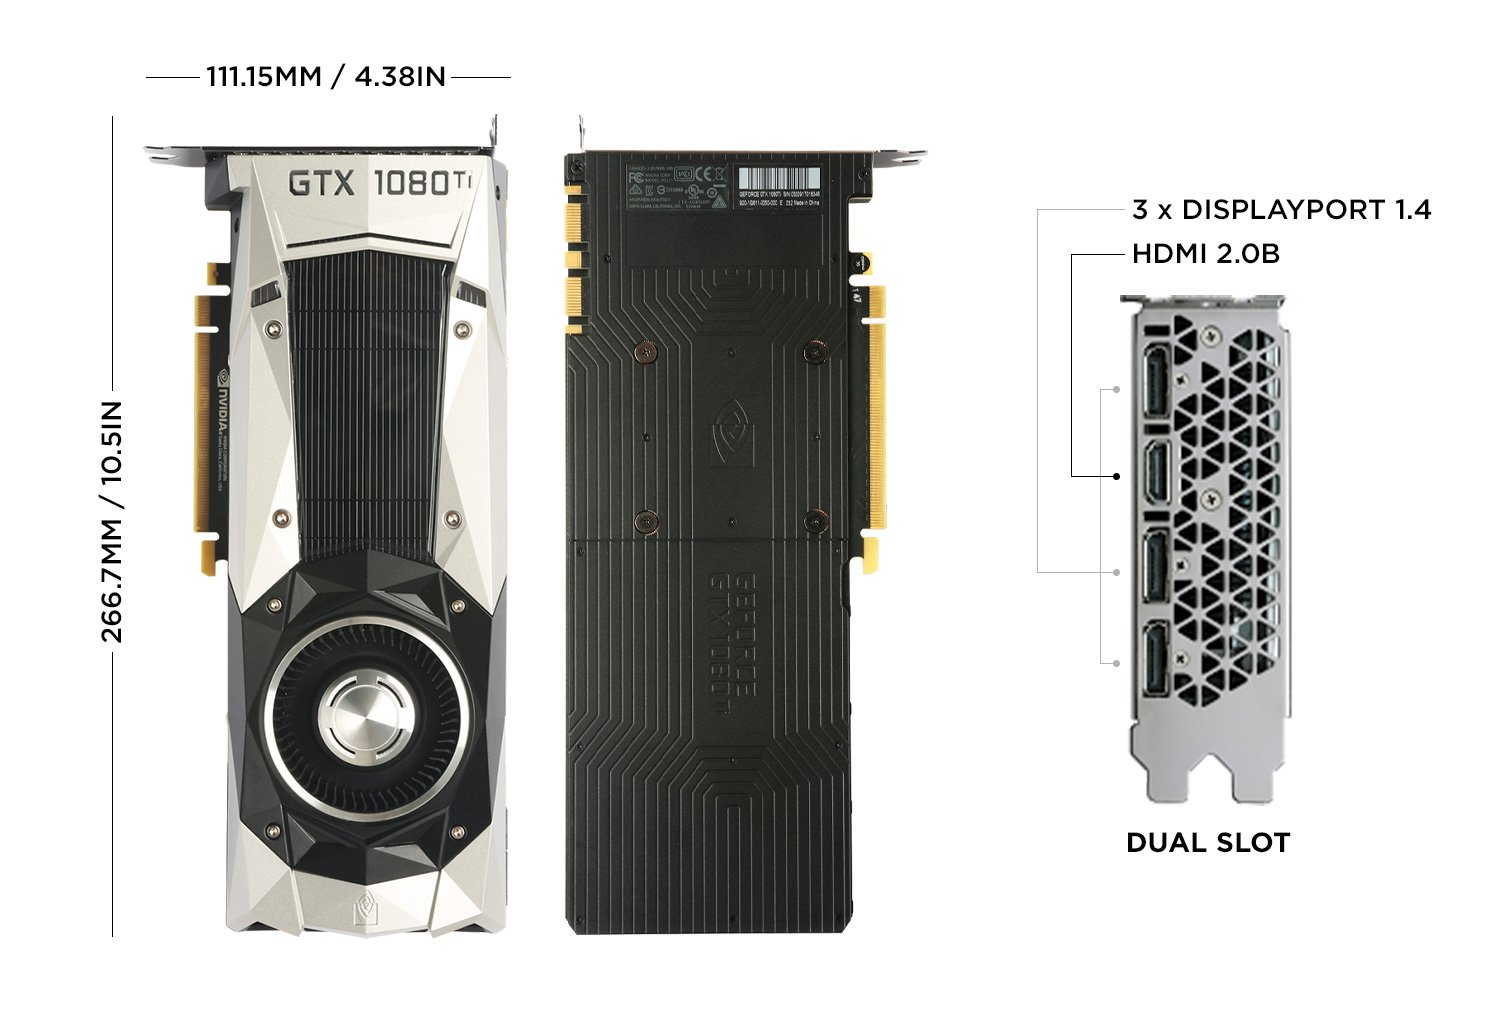 12 Best GTX 1080 Ti cards as of 2019 - Slant